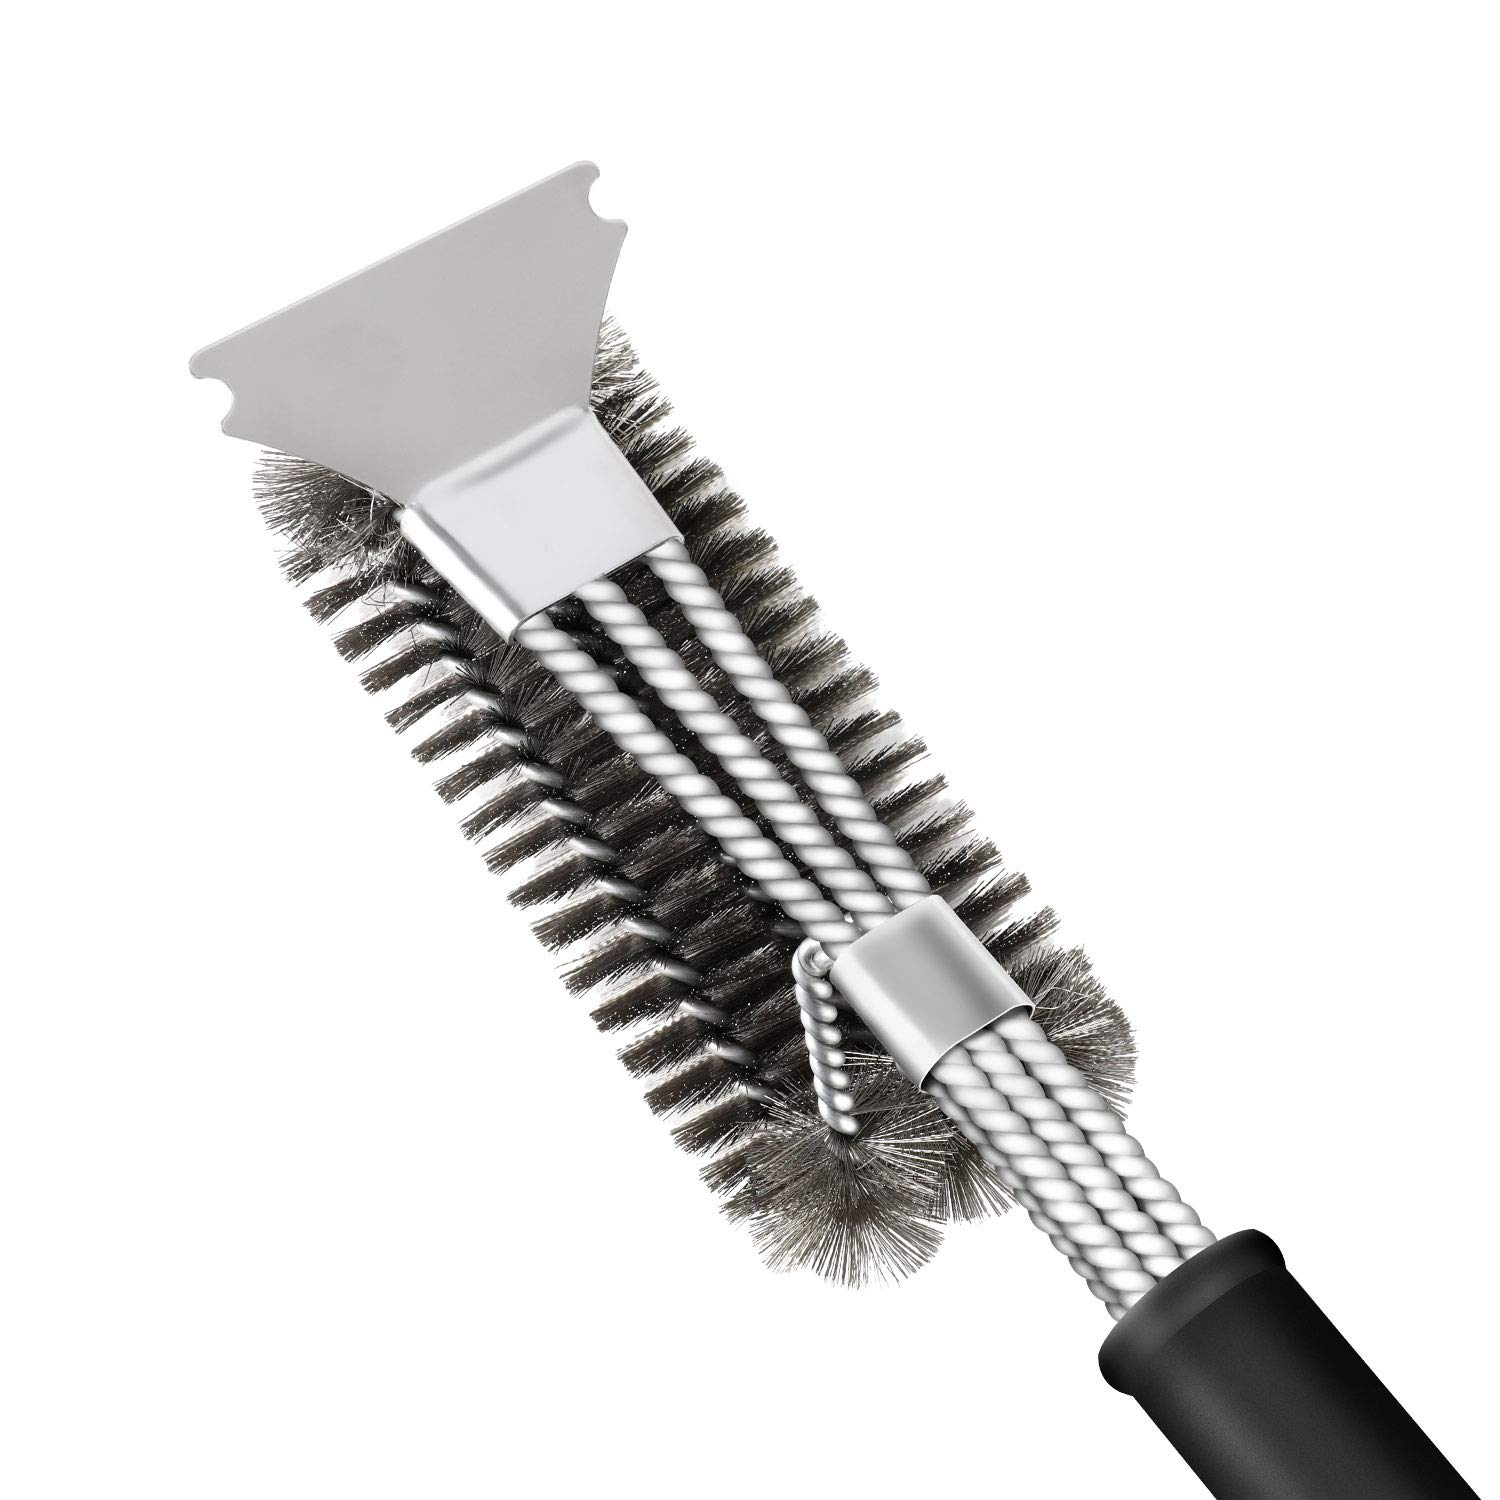 Grill Brush and Scraper, SAELLEAS 3-in-1 BBQ Brush for Grill 18 Inch Stainless Steel Barbecue Cleaner Bristles Free Grill Scrubber for Charcoal Porcelain/Ceramic/Iron/Steel Grill Grates by Feeke